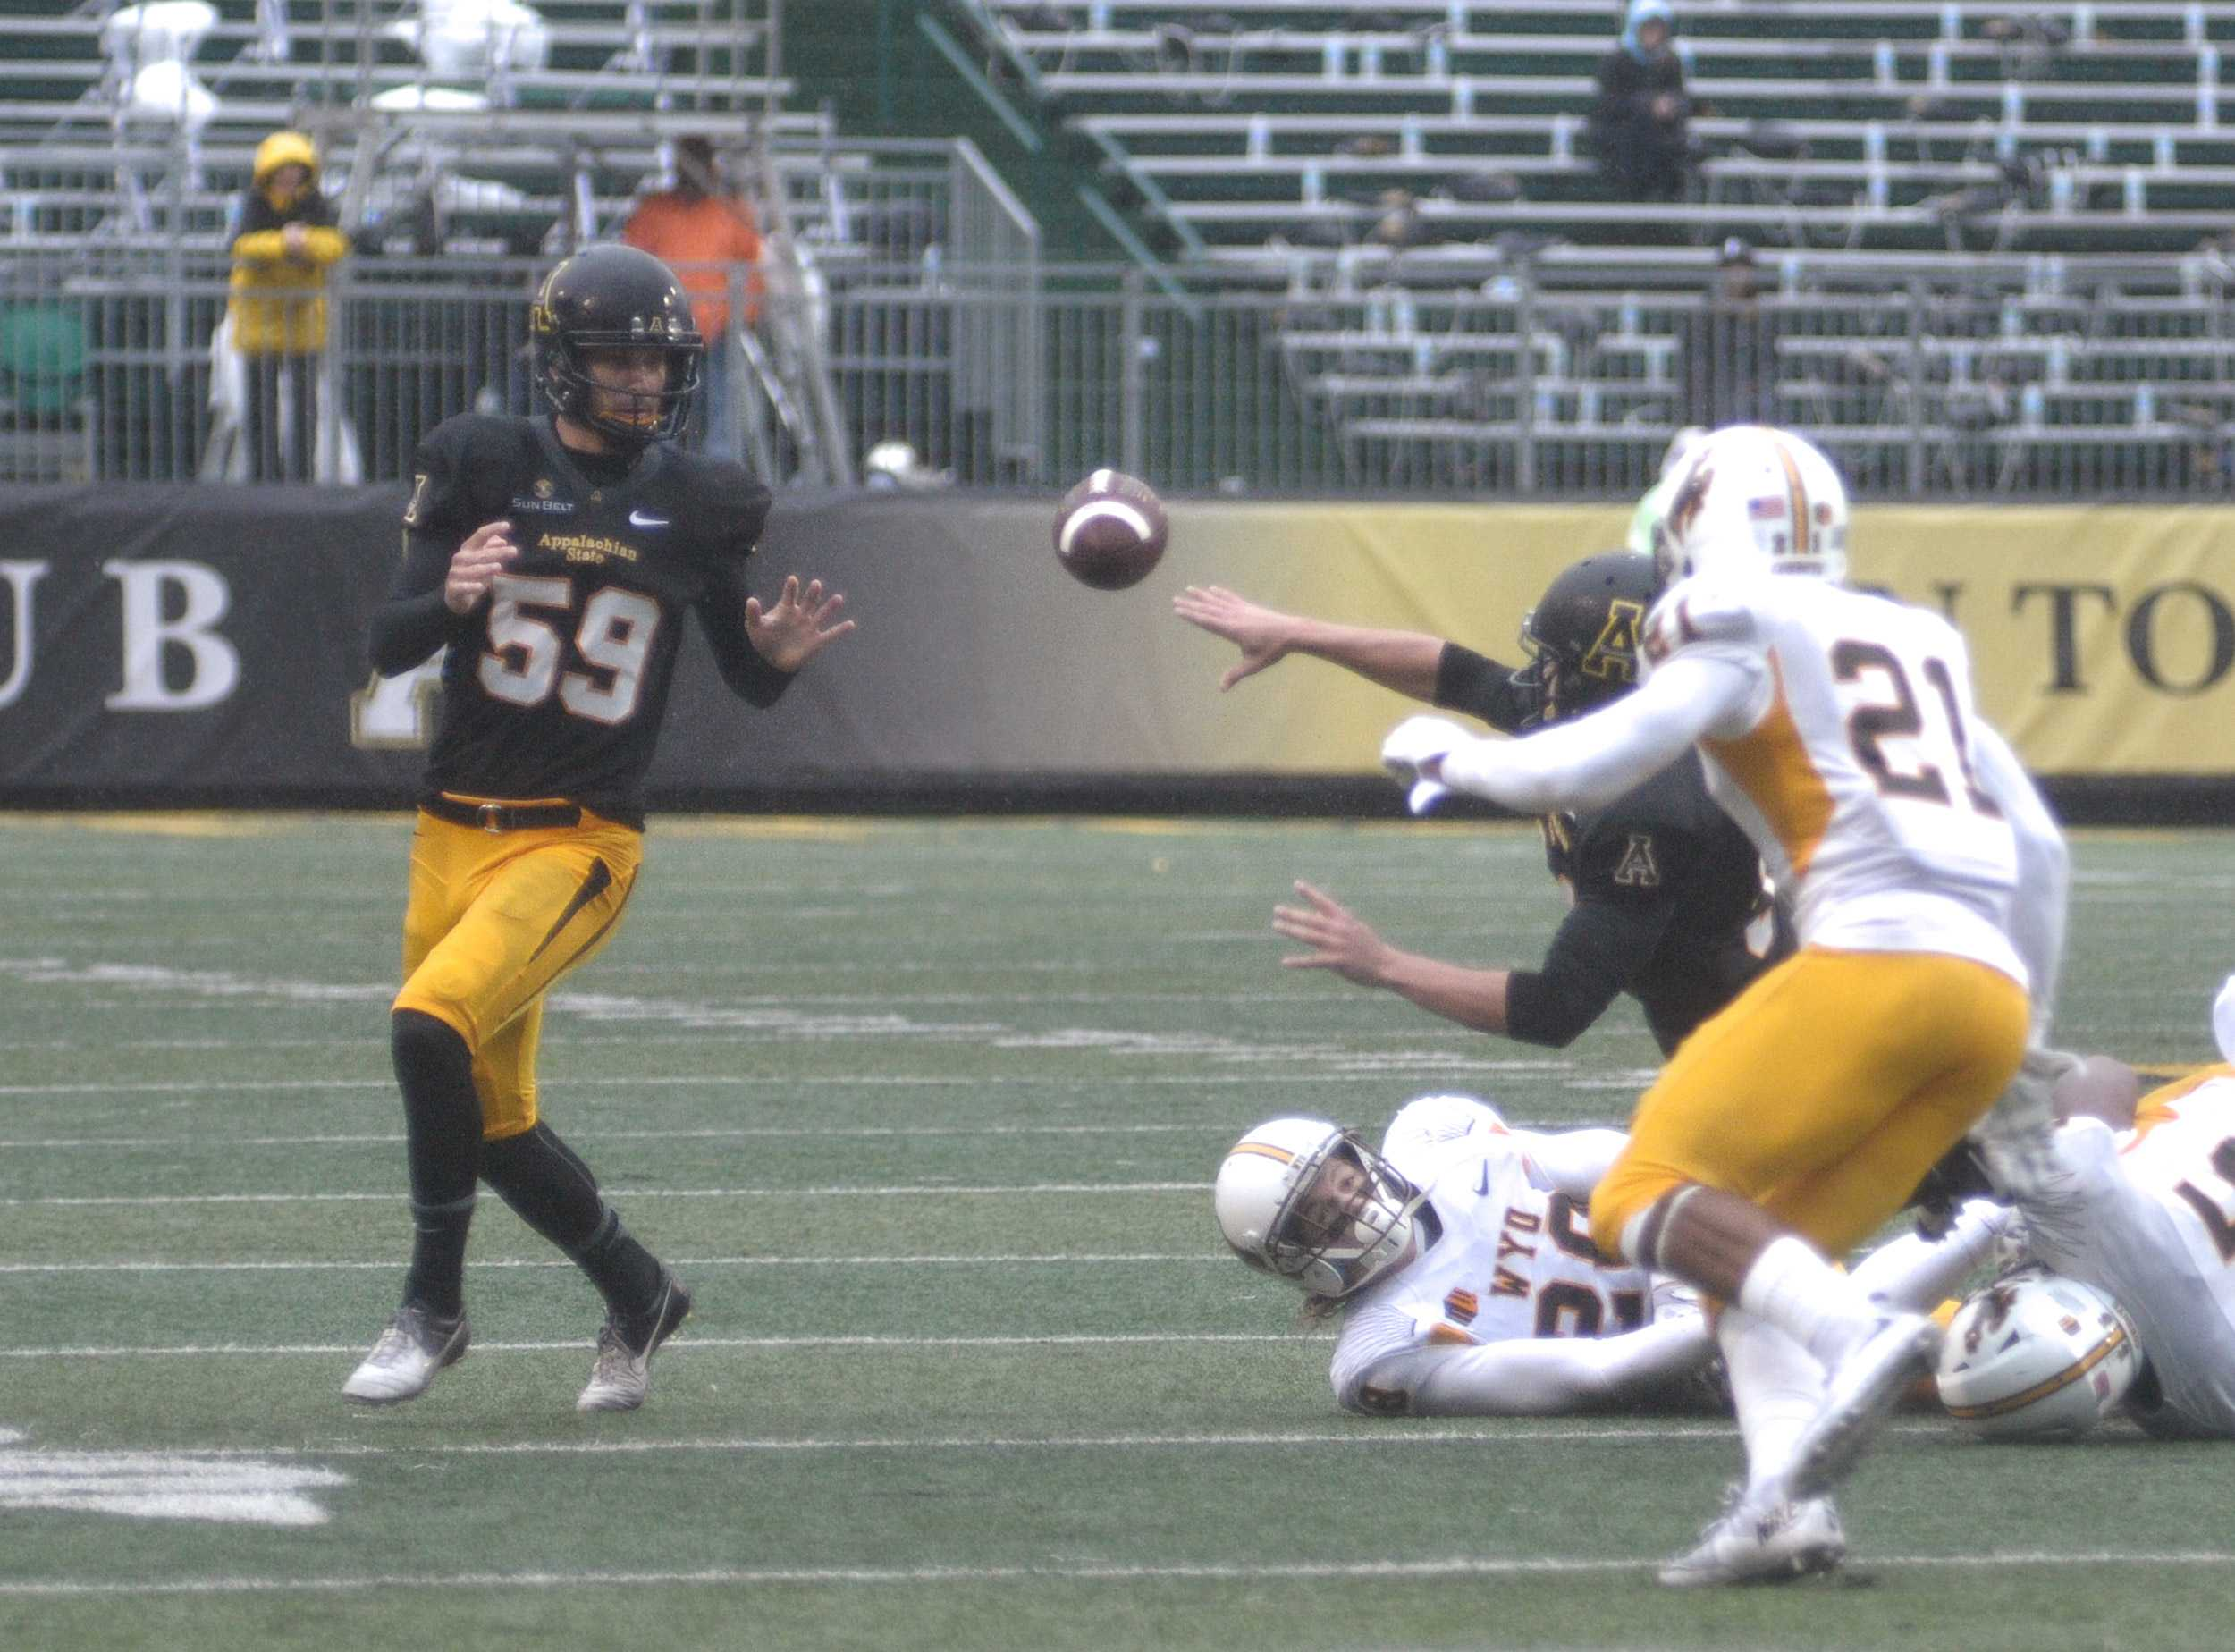 App State kicker Zach Matics receives a pitch on a fake field goal attempt in the second quarter. The Mountaineers defeated Wyoming 31-13.